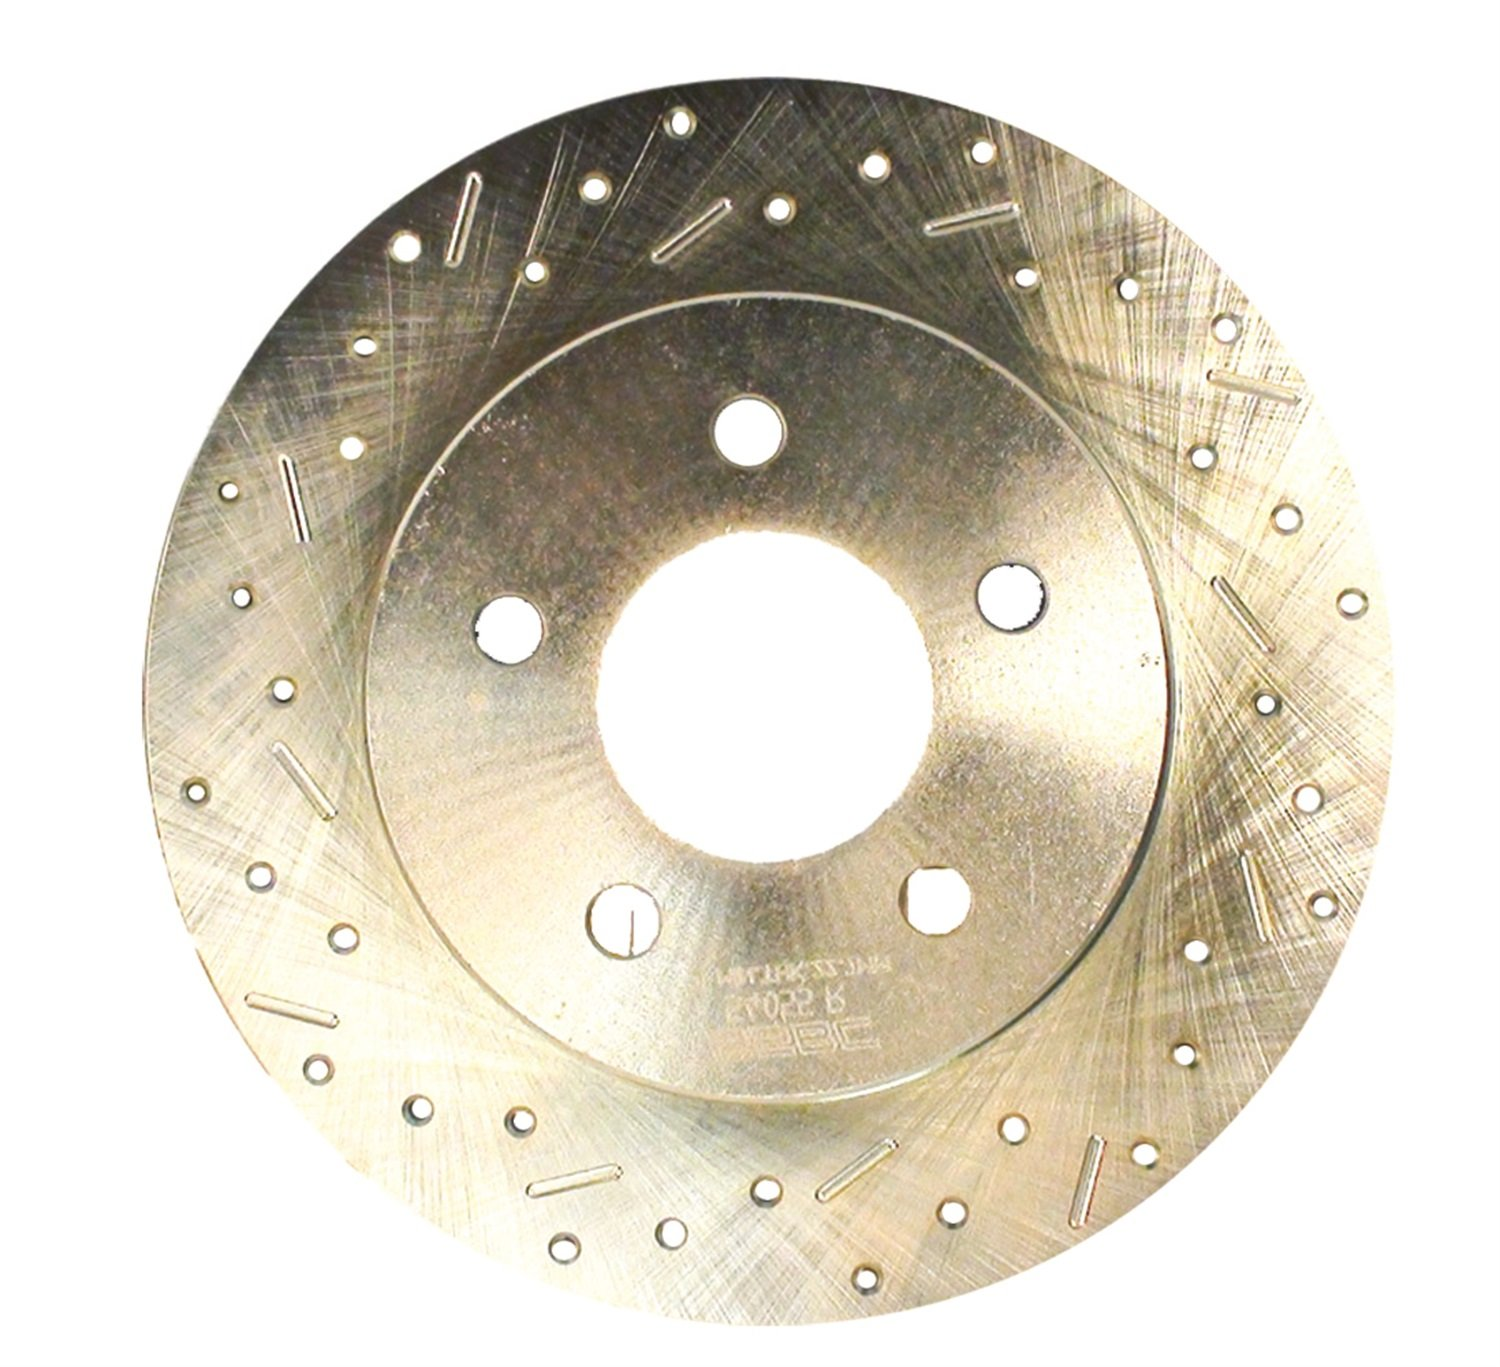 SSBC 23618AA3L Drilled Slotted Plated Rear Driver Side Rotor for 1995-97 Blazer 2WD with ABS includes ABS Ring